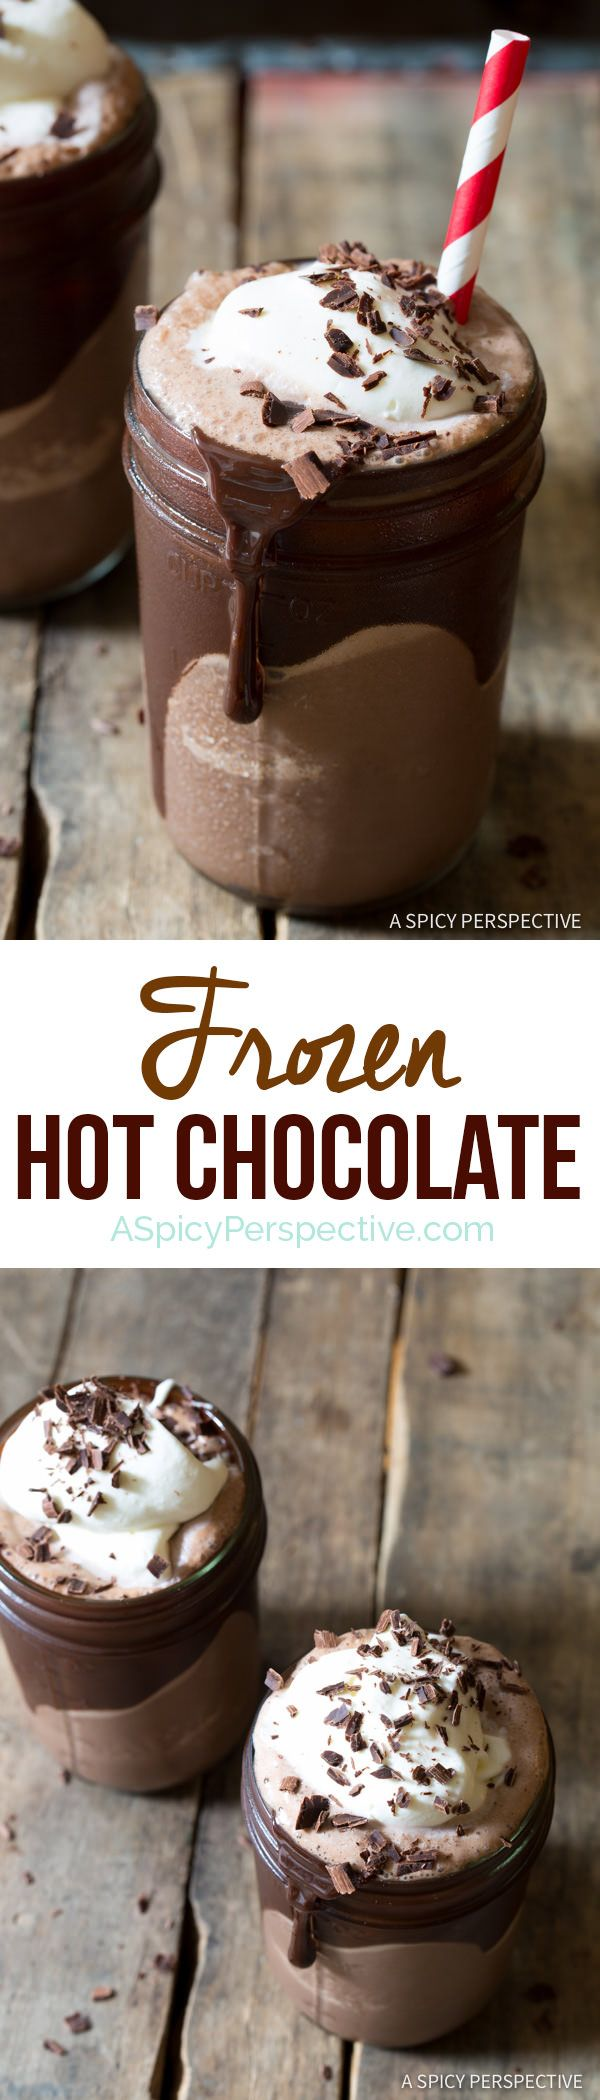 Frozen Hot Chocolate | Recipe | Dr. oz, Frozen and Videos